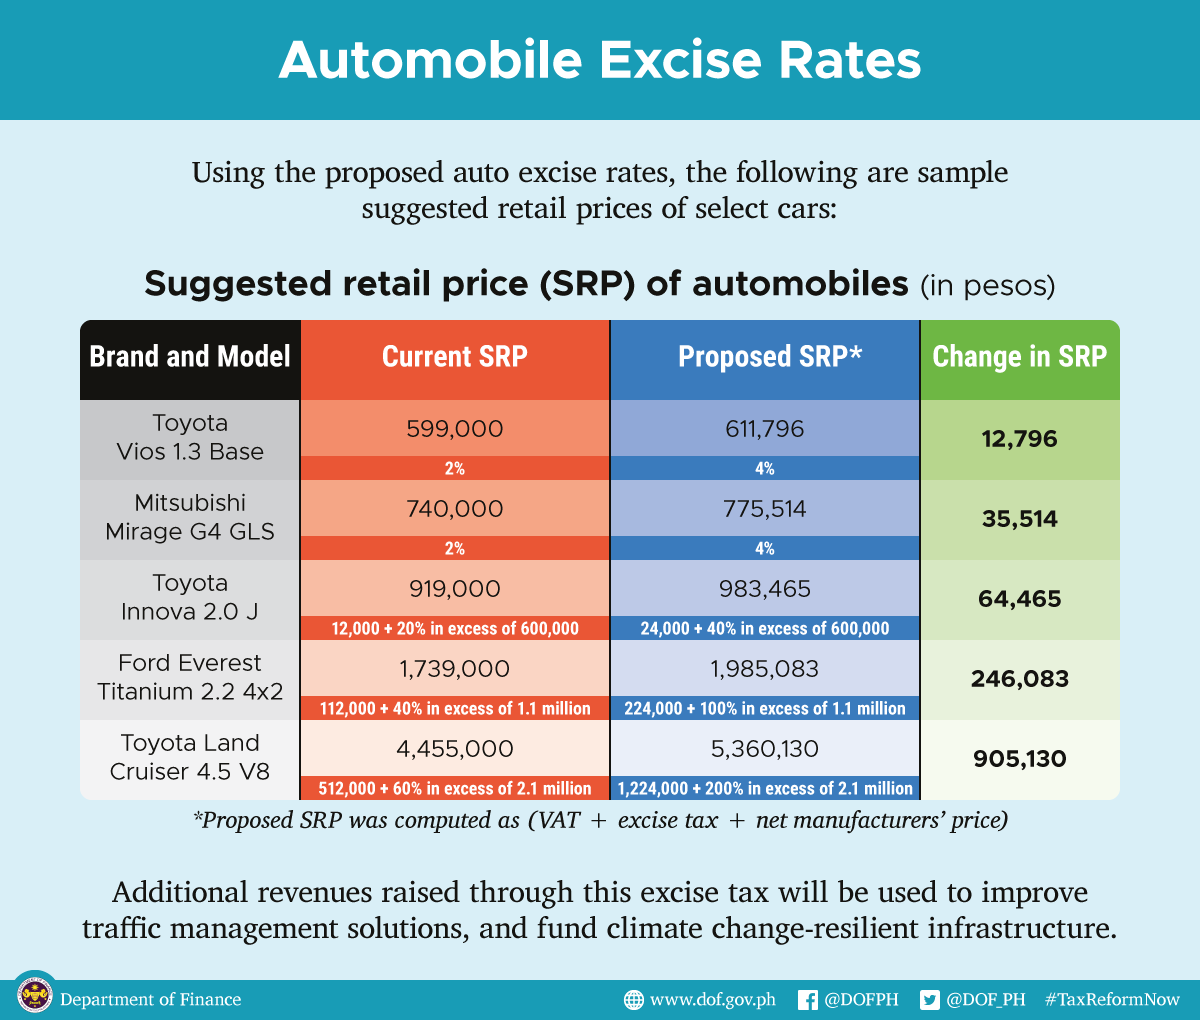 ctrp-package-one_excise-auto-rates-2